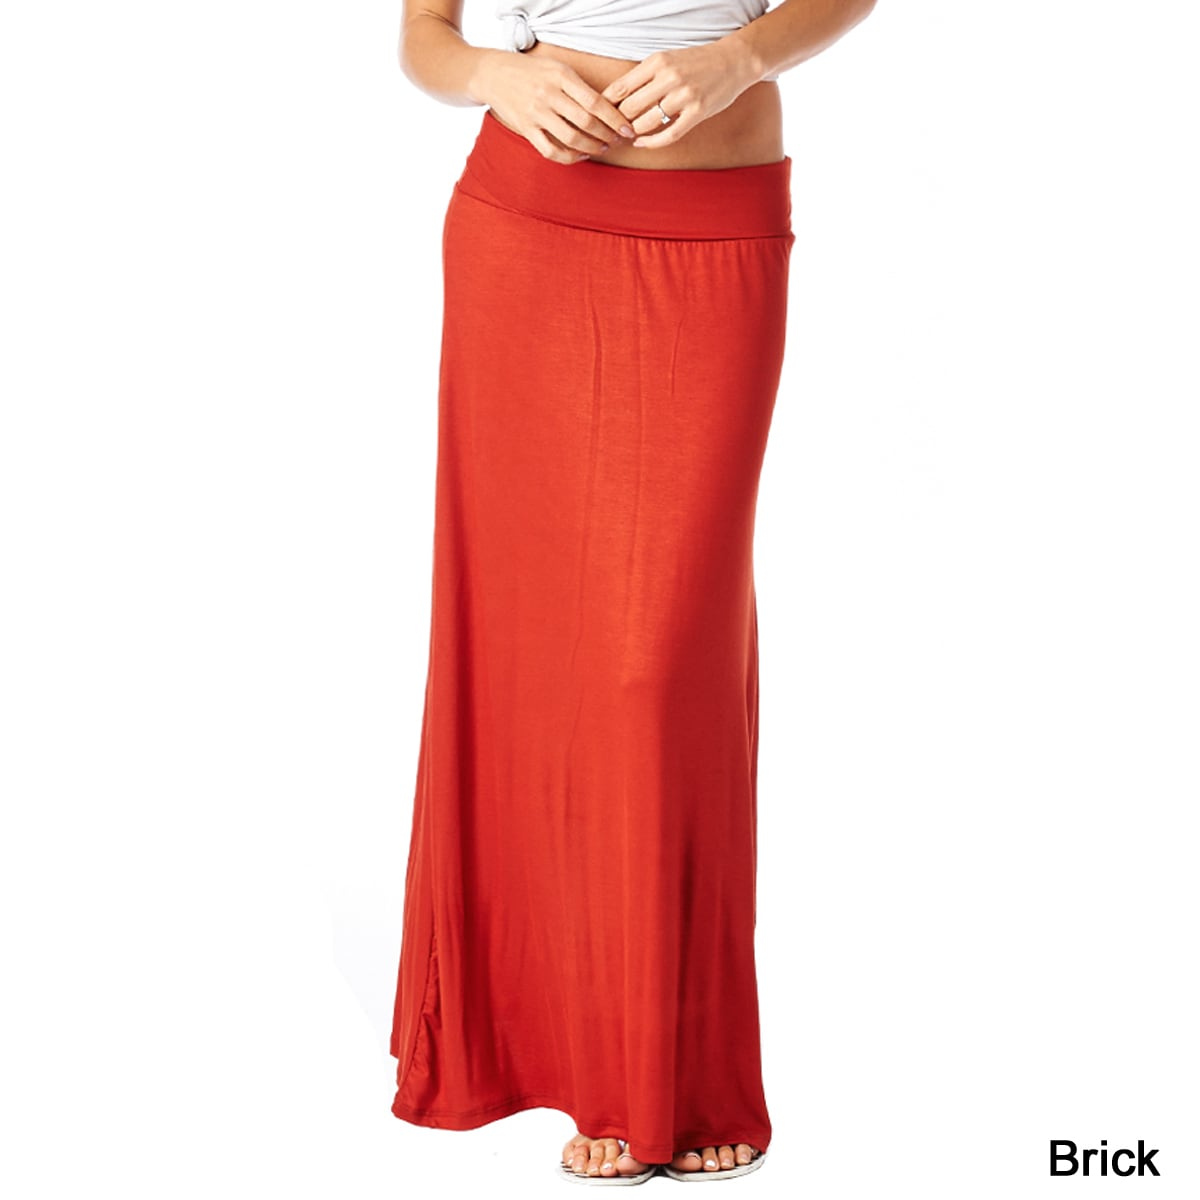 ea7dc7b2a0058 Shop Popana Women s Rayon Comfortable and Versatile Maxi Skirt - Free  Shipping On Orders Over  45 - Overstock - 10433914